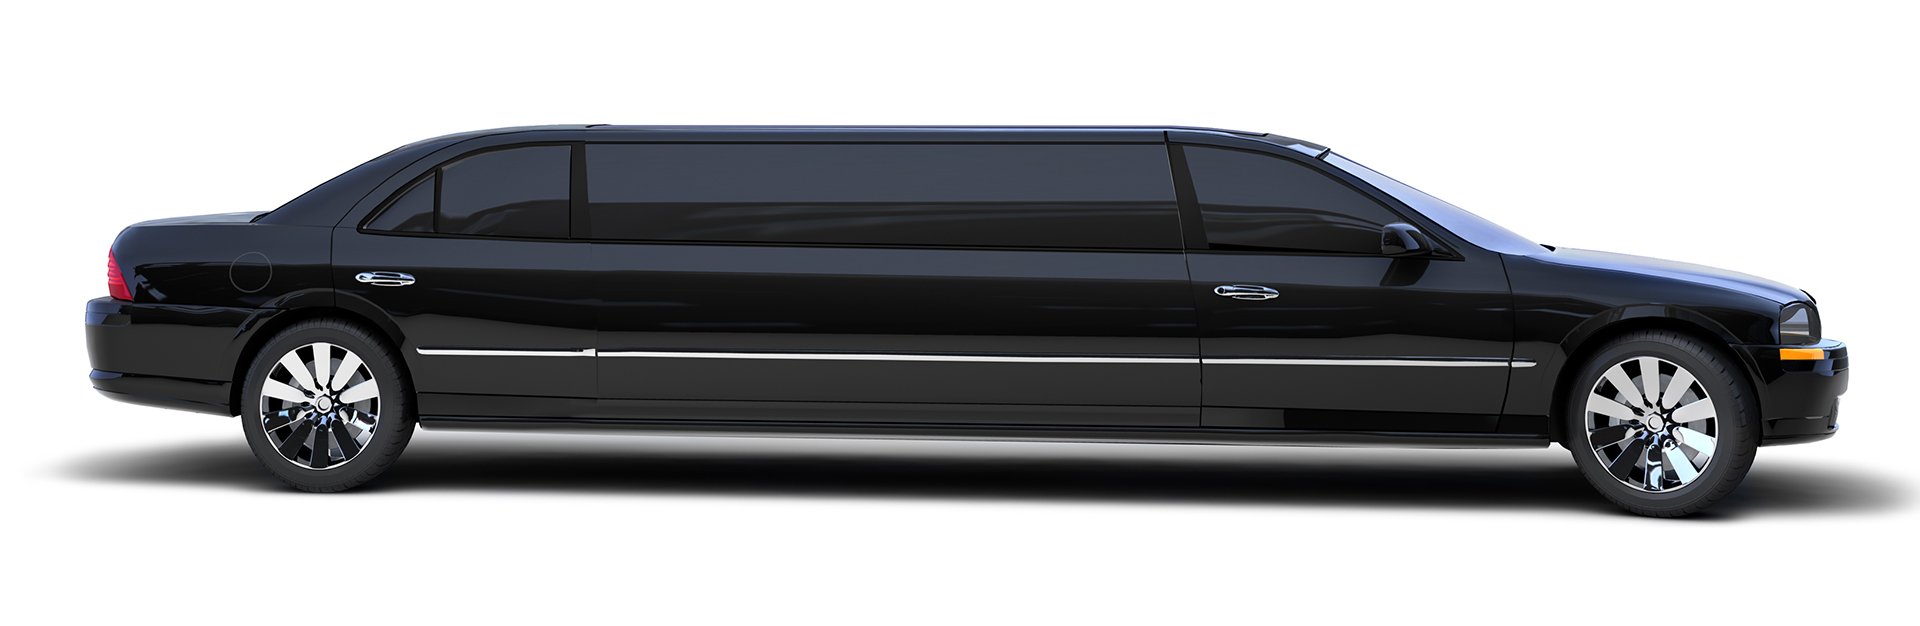 Airport Limousine Pick-up